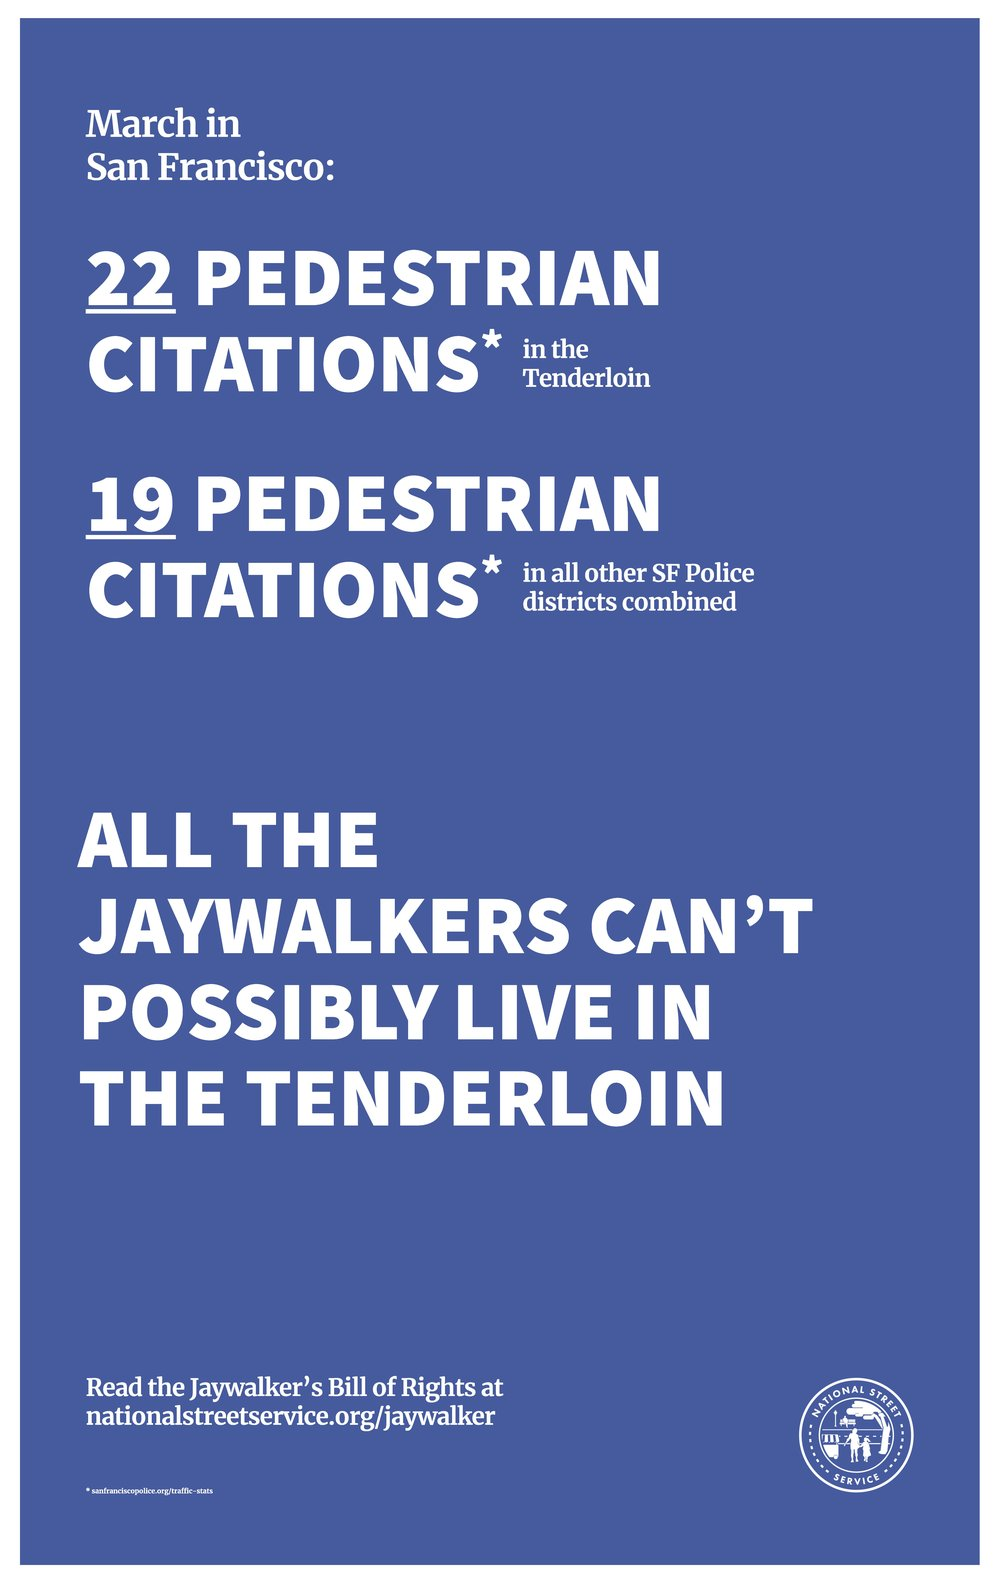 Jaywalker Bill of Rights_Page_4.jpg